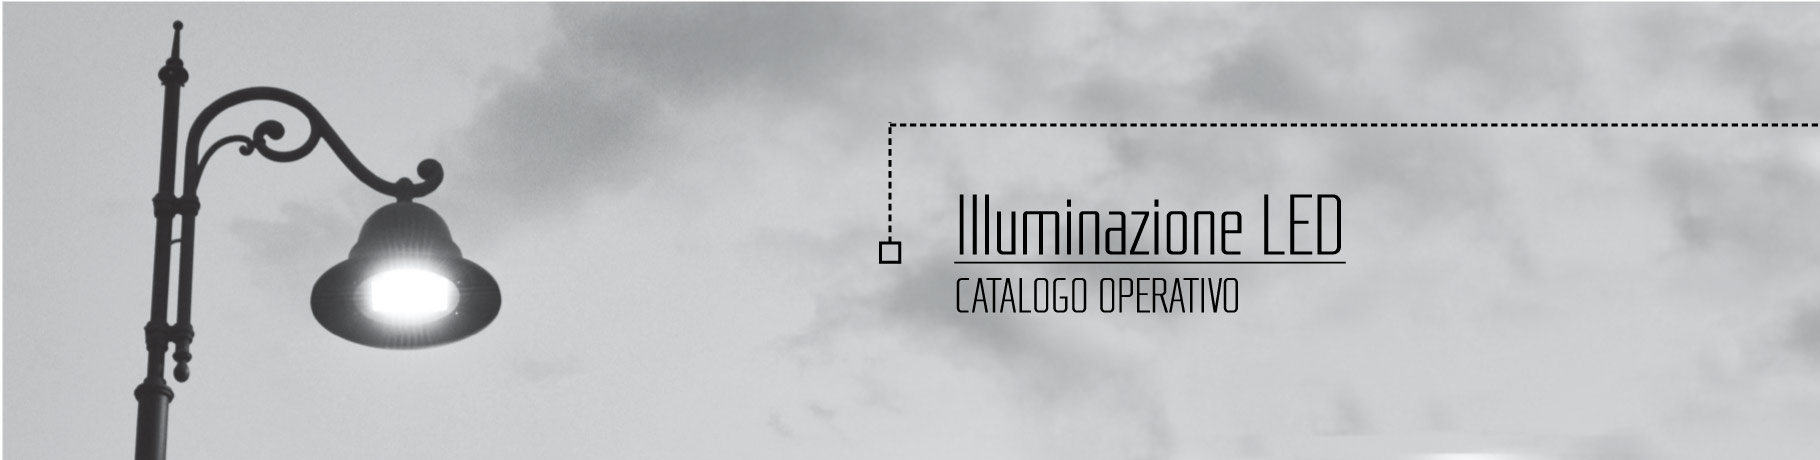 Catalogo operativo LED